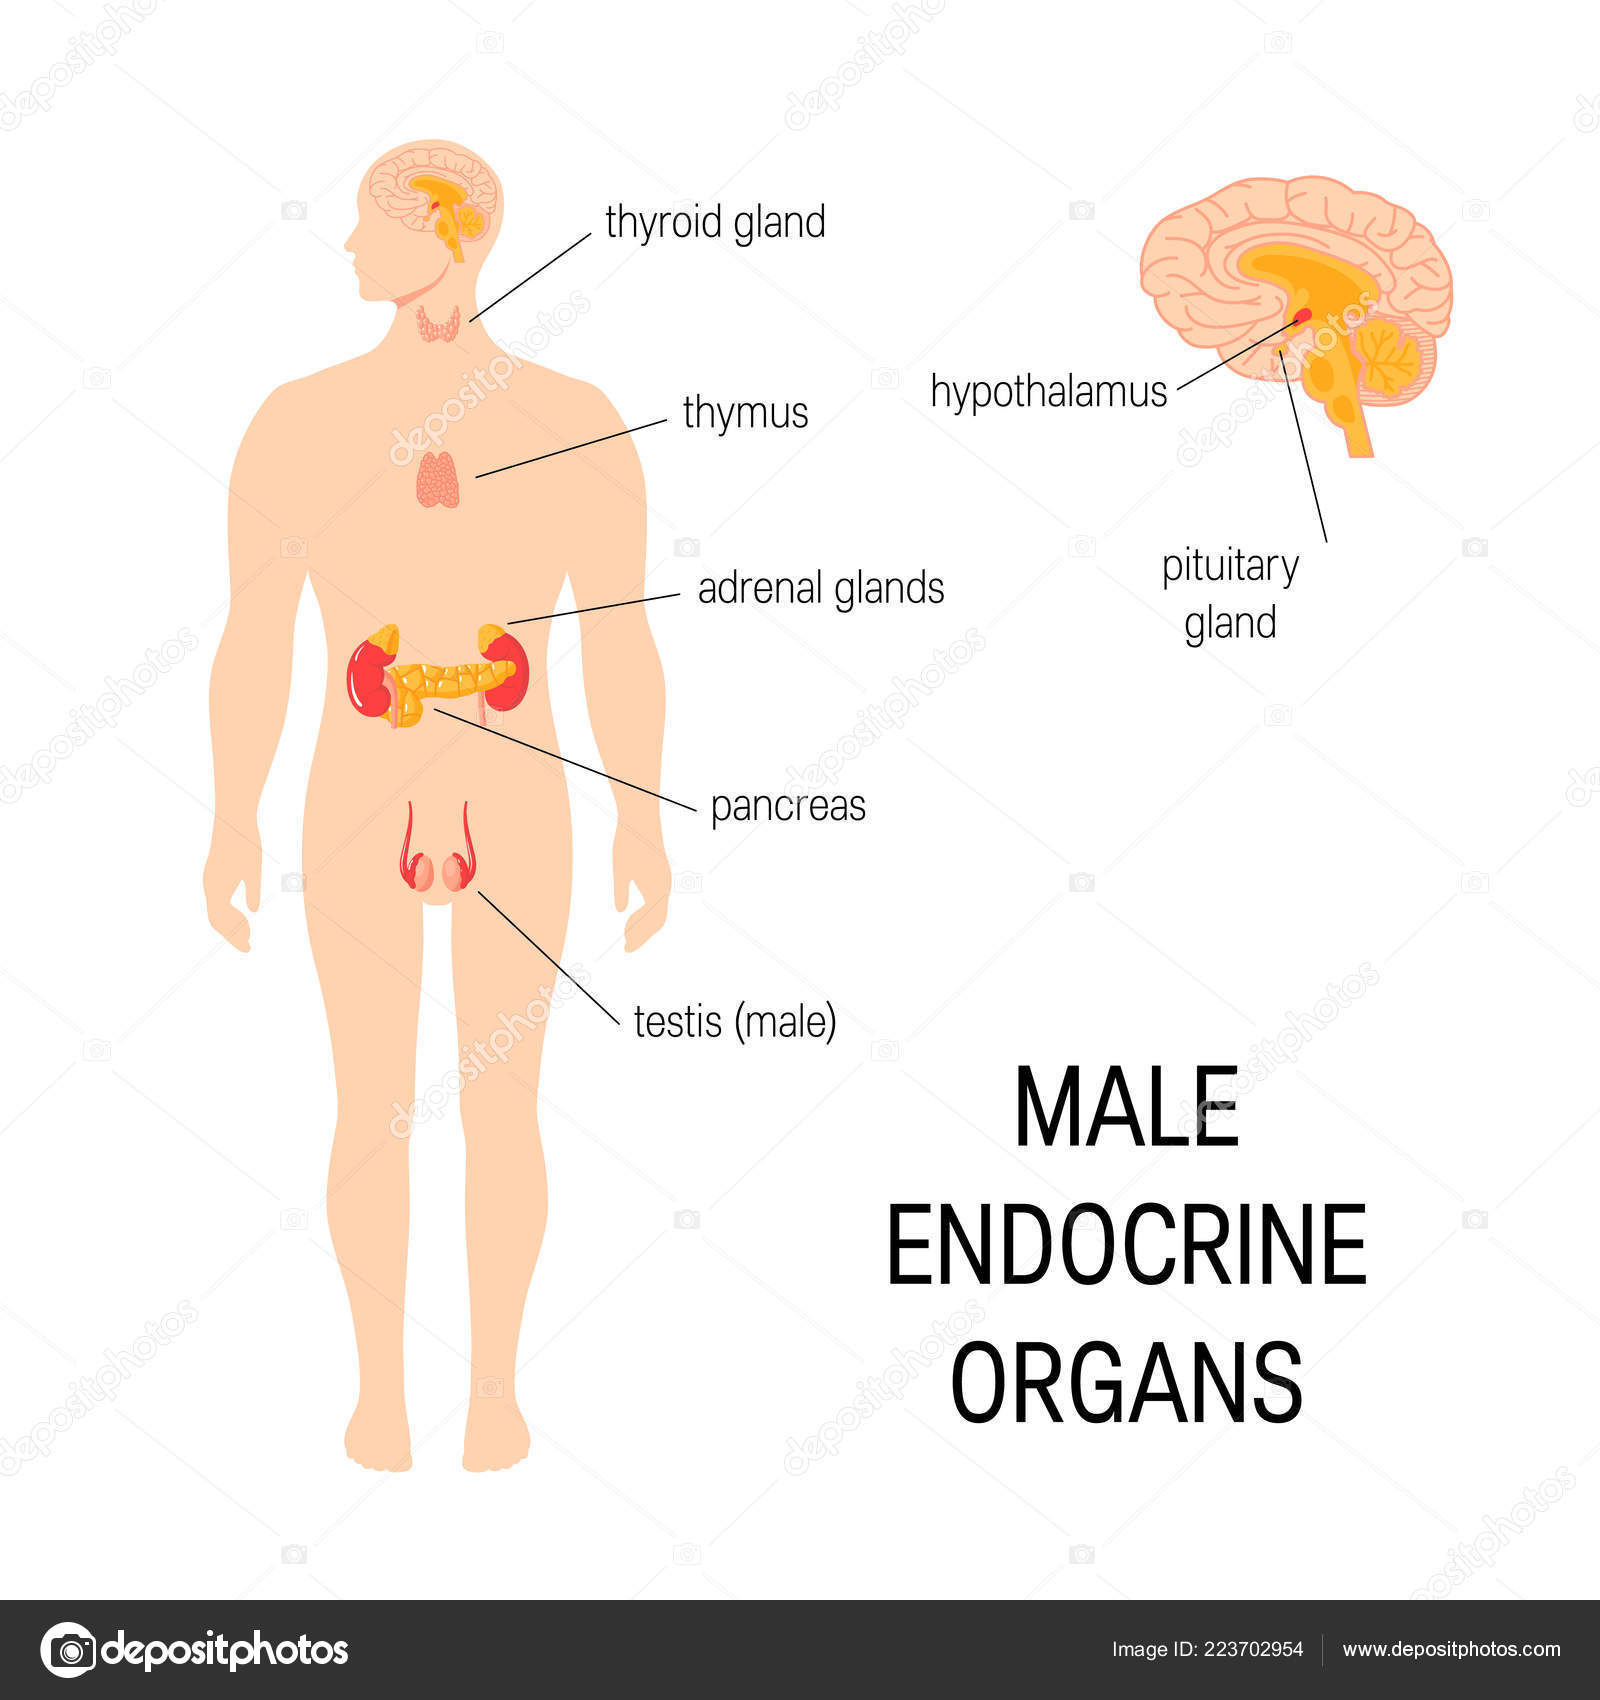 Male Endocrine Organs Simple Vector Infographic In Flat Style